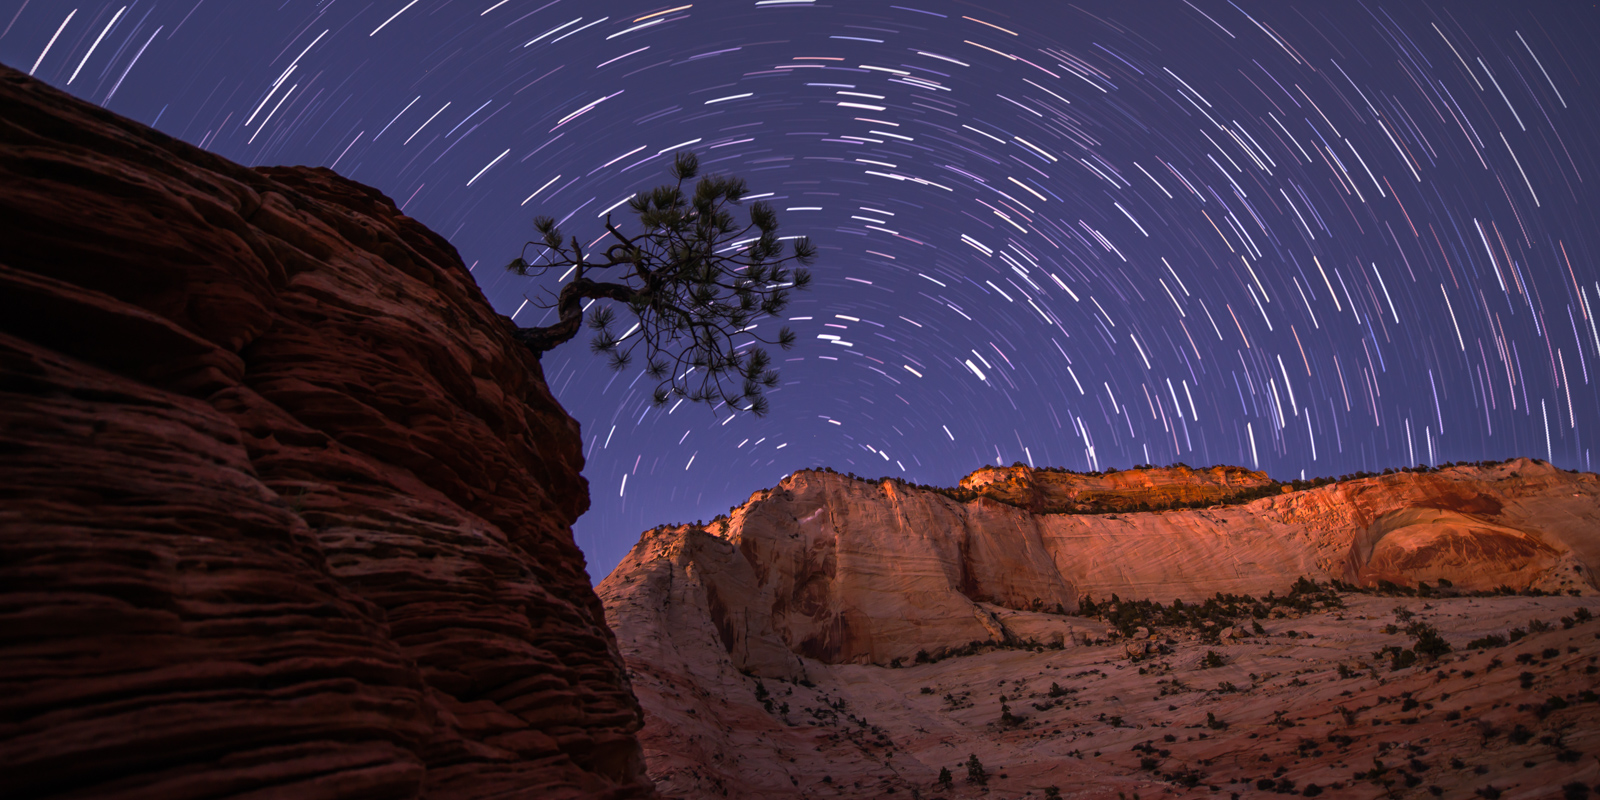 Startrails above a lone Pinyon Pine perched on a sandstone cliff in Zion National Park, Utah.